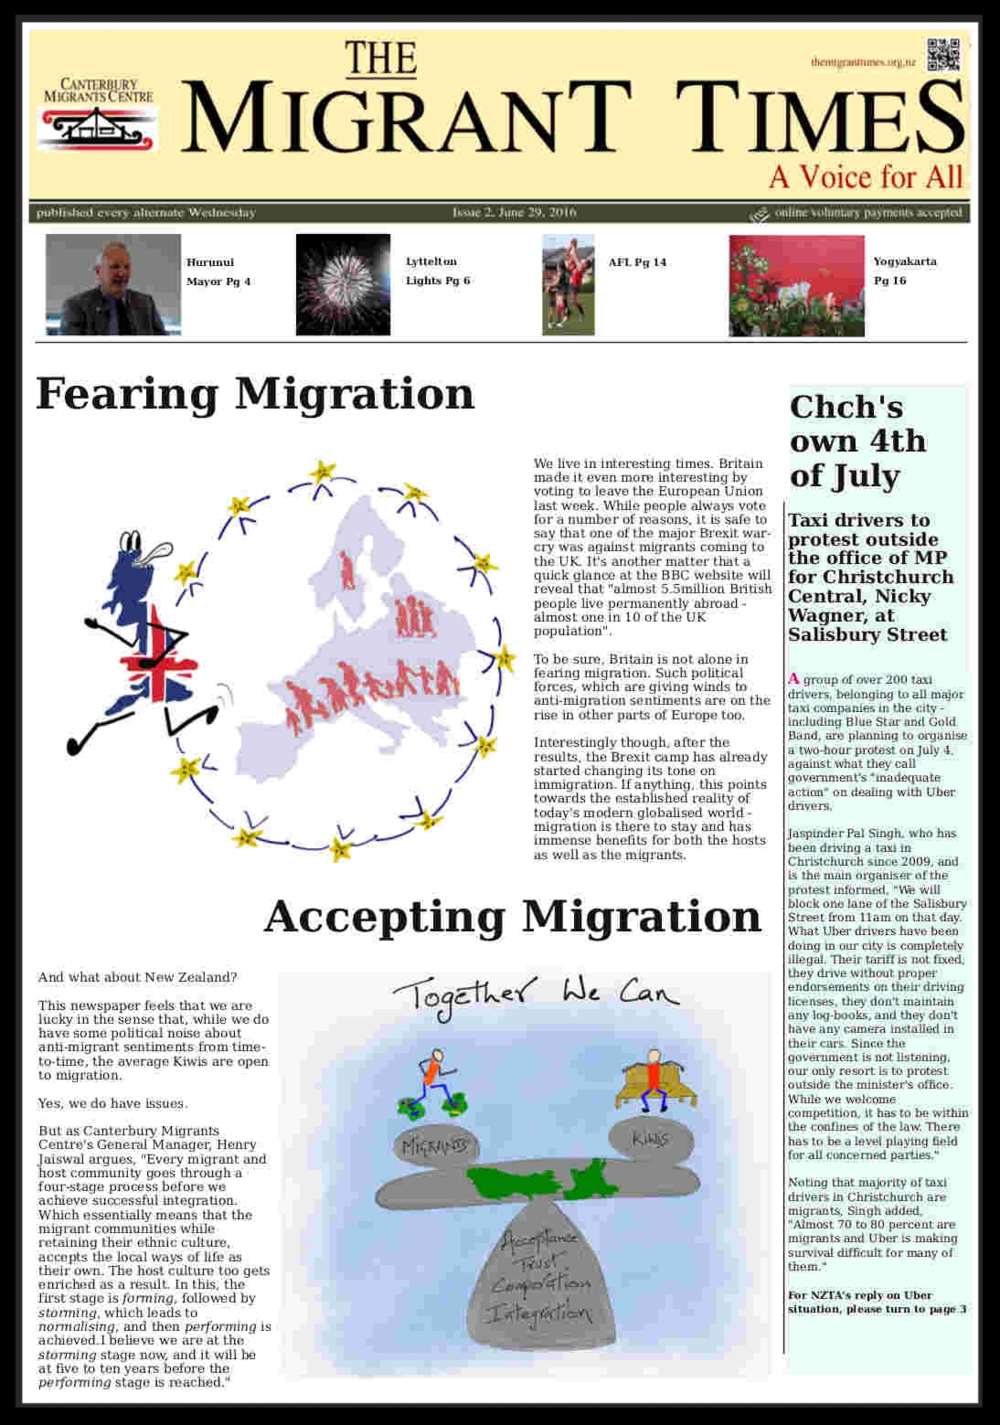 Click on the image to read the pdf version    Issue 2, June 29 - July 12, 2016